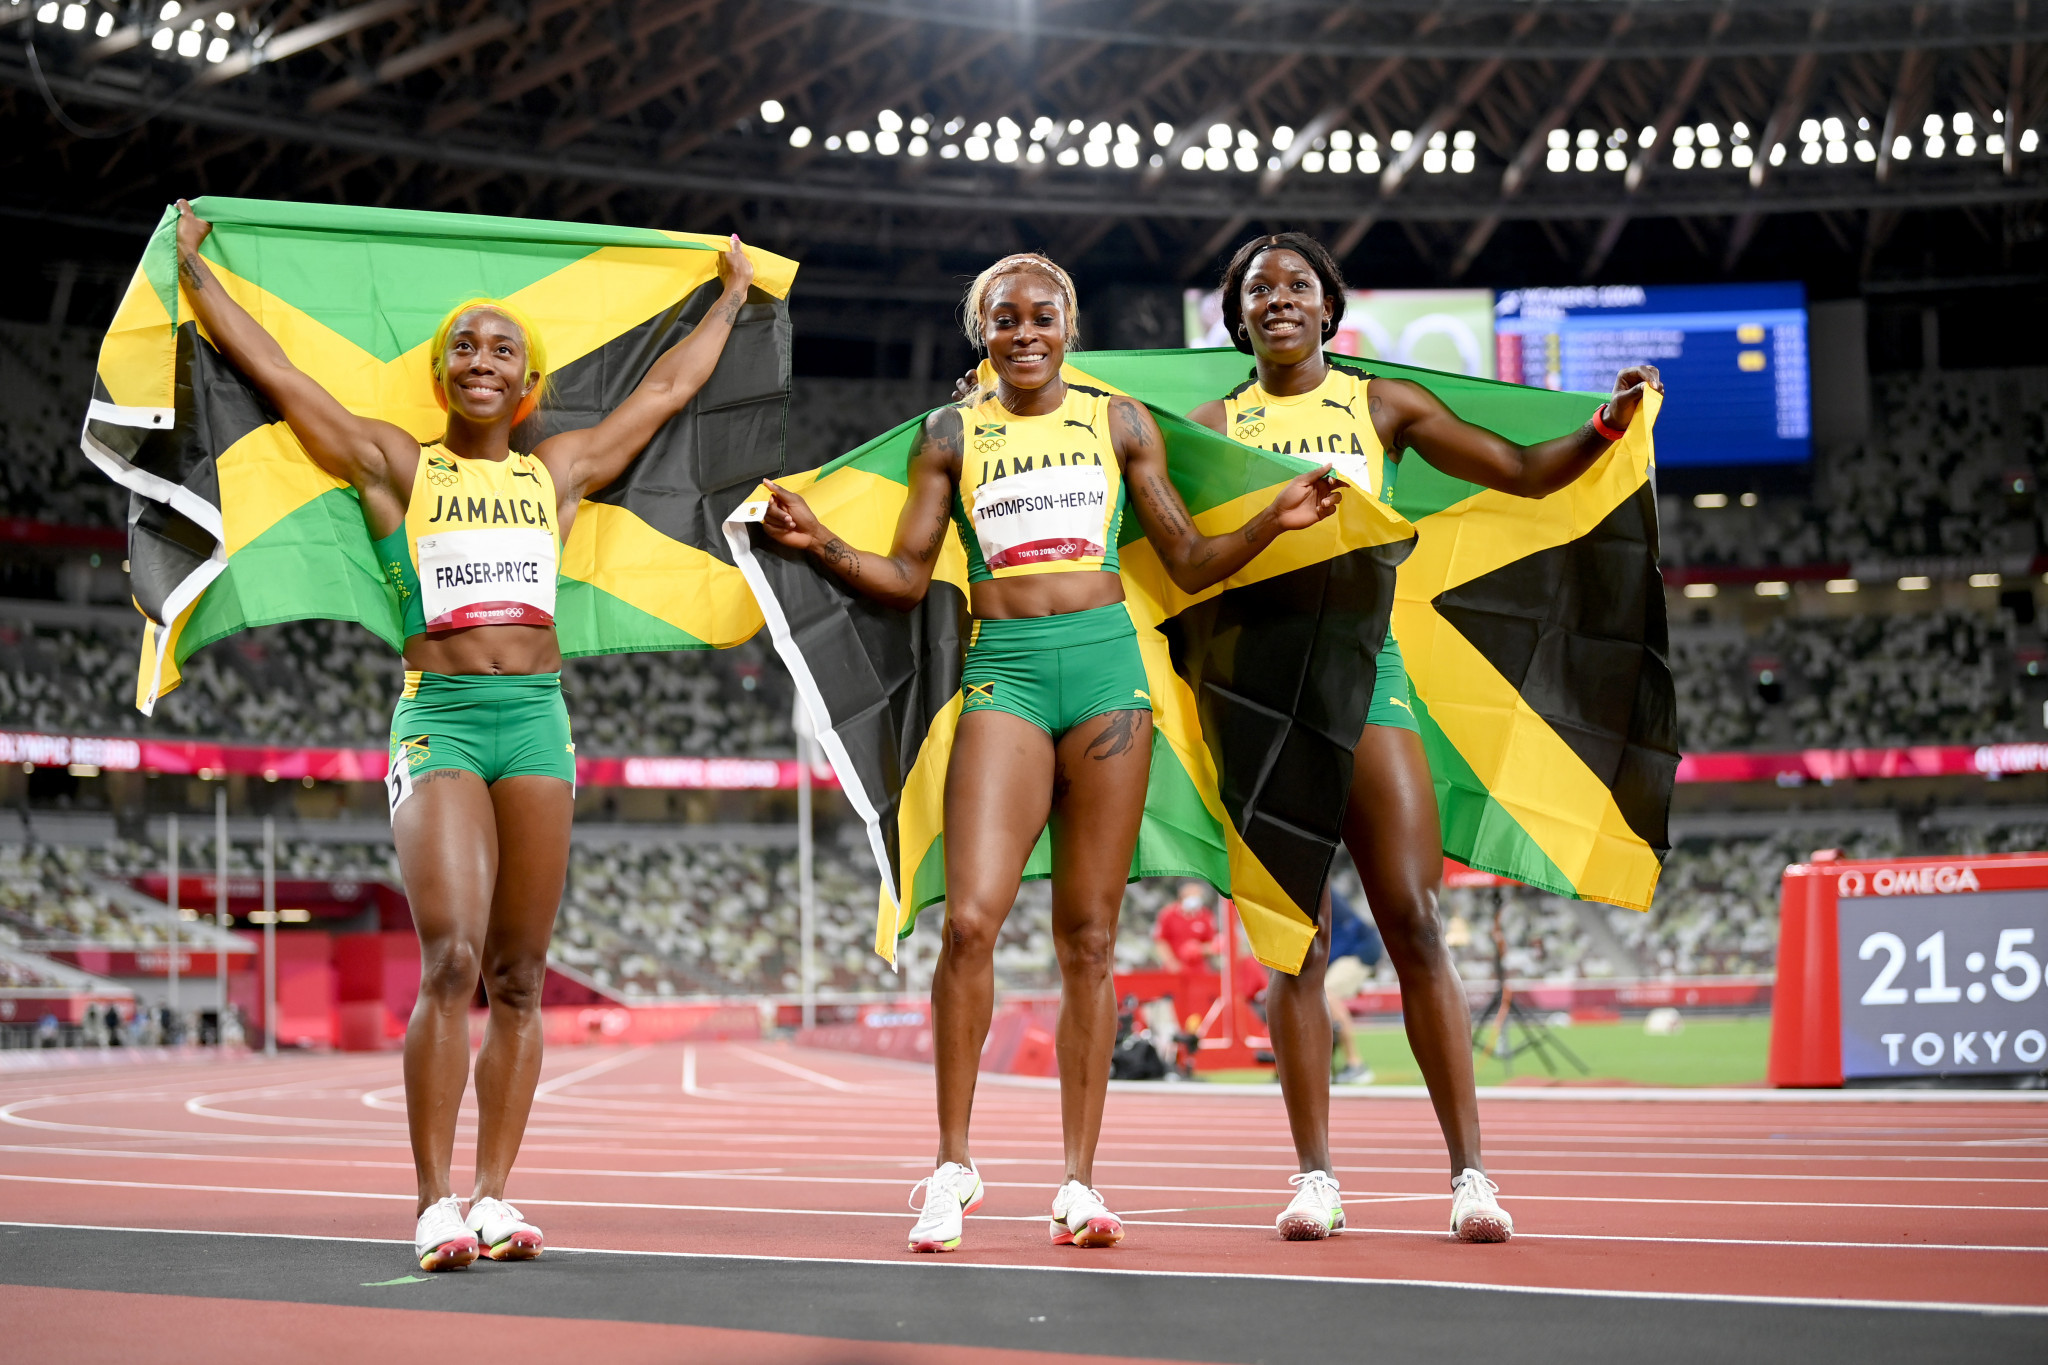 Jamaica claimed a clean sweep of the women's 100 metres thanks to Shelly-Ann Fraser-Pryce, Elaine Thompson-Herah and Shericka Jackson ©Getty Images